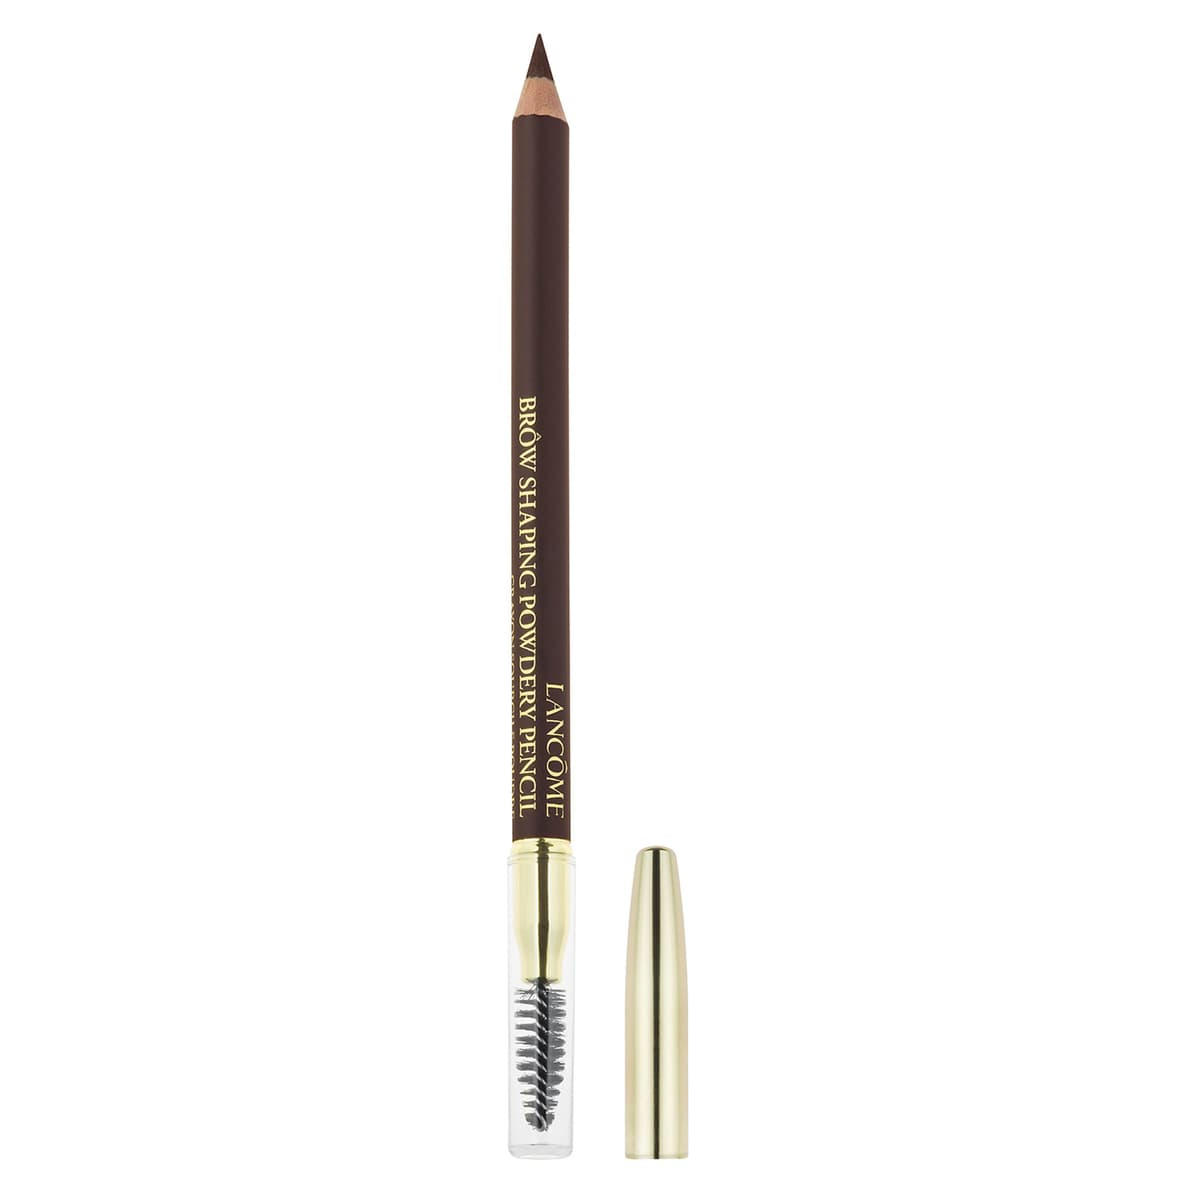 Lancome Brow Shaping Powdery Pencil Dark Brown 08